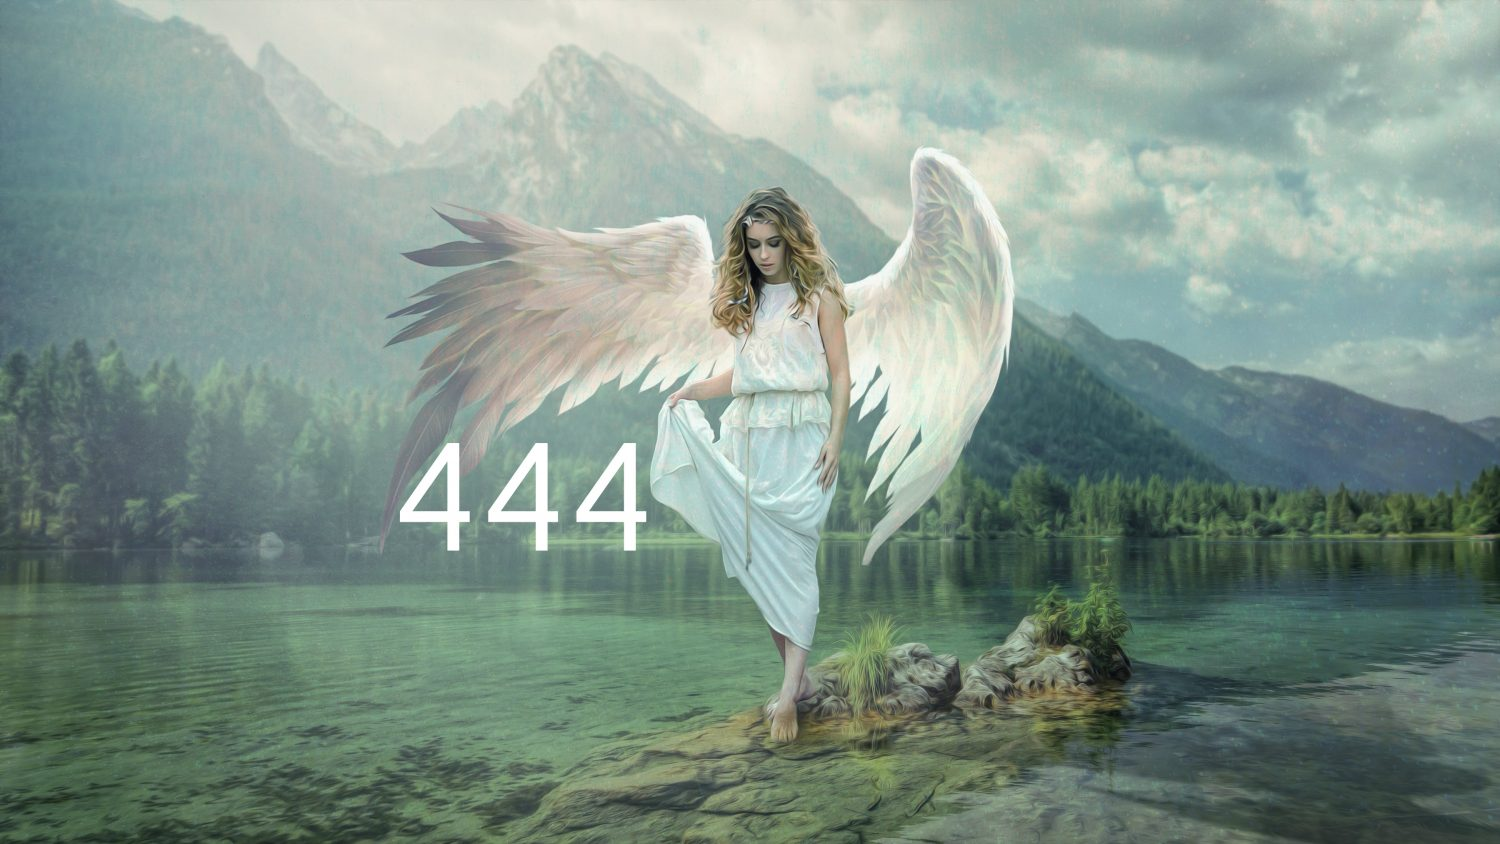 Angel Number 444, What Does It Mean To You?